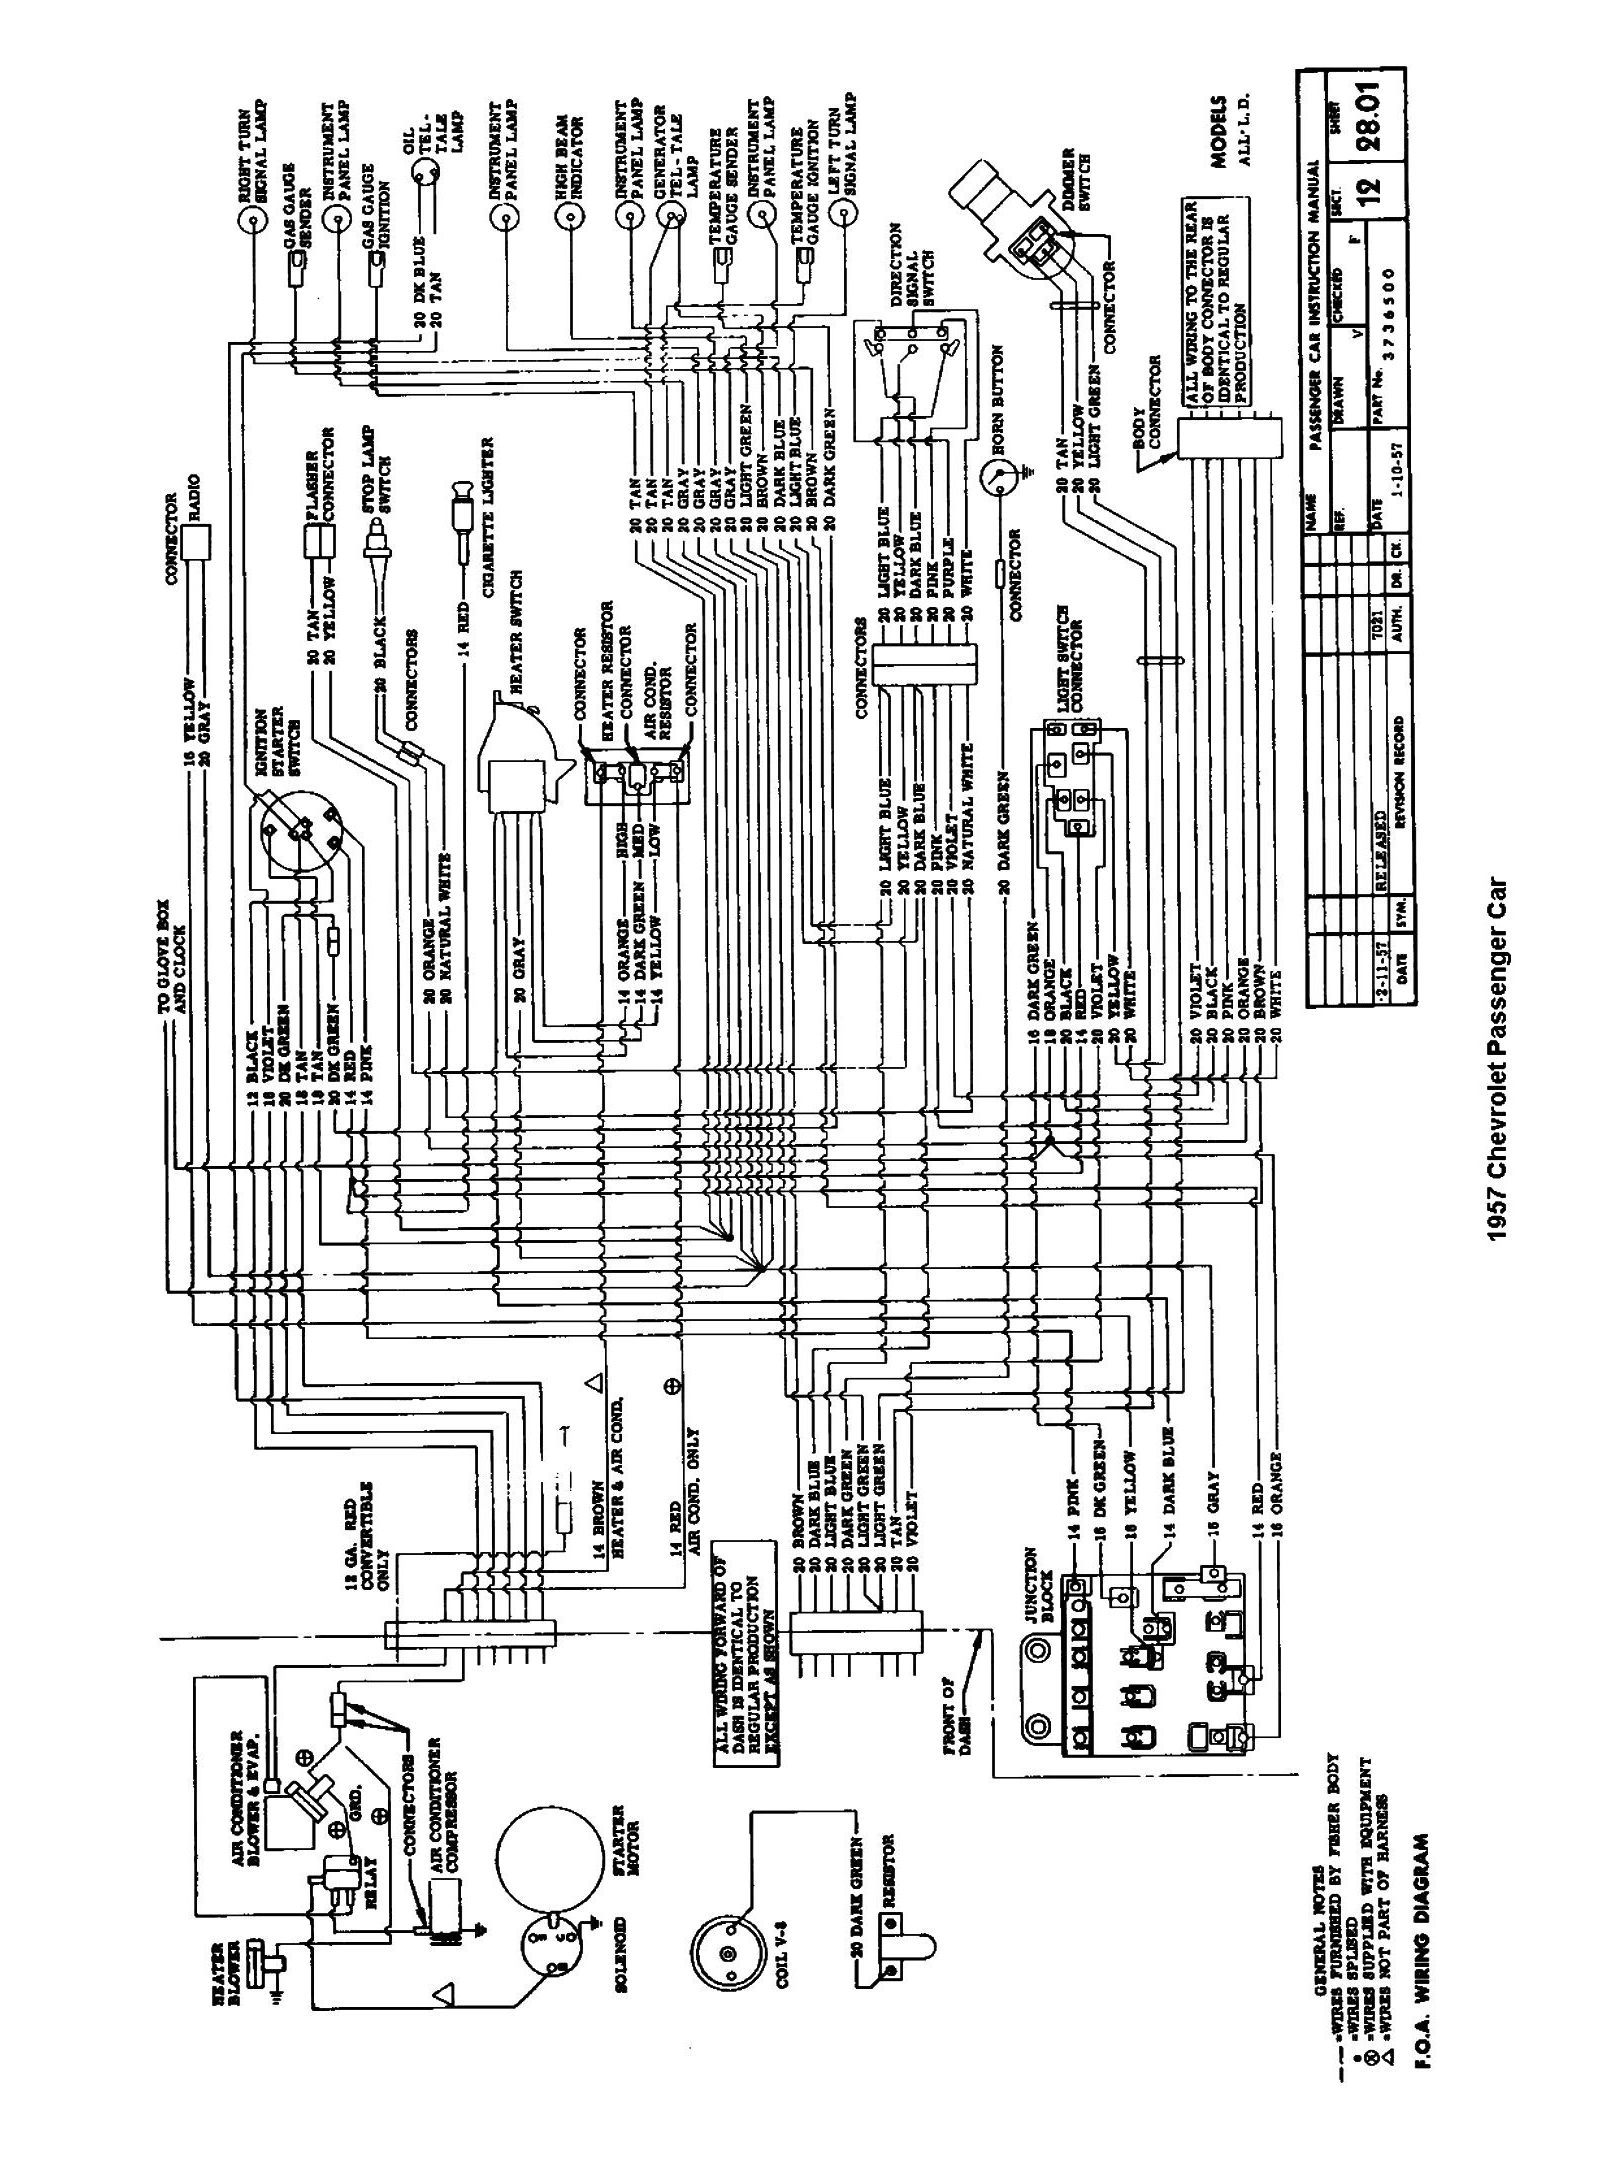 57car2 chevy wiring diagrams 1957 chevy headlight switch wiring diagram at fashall.co